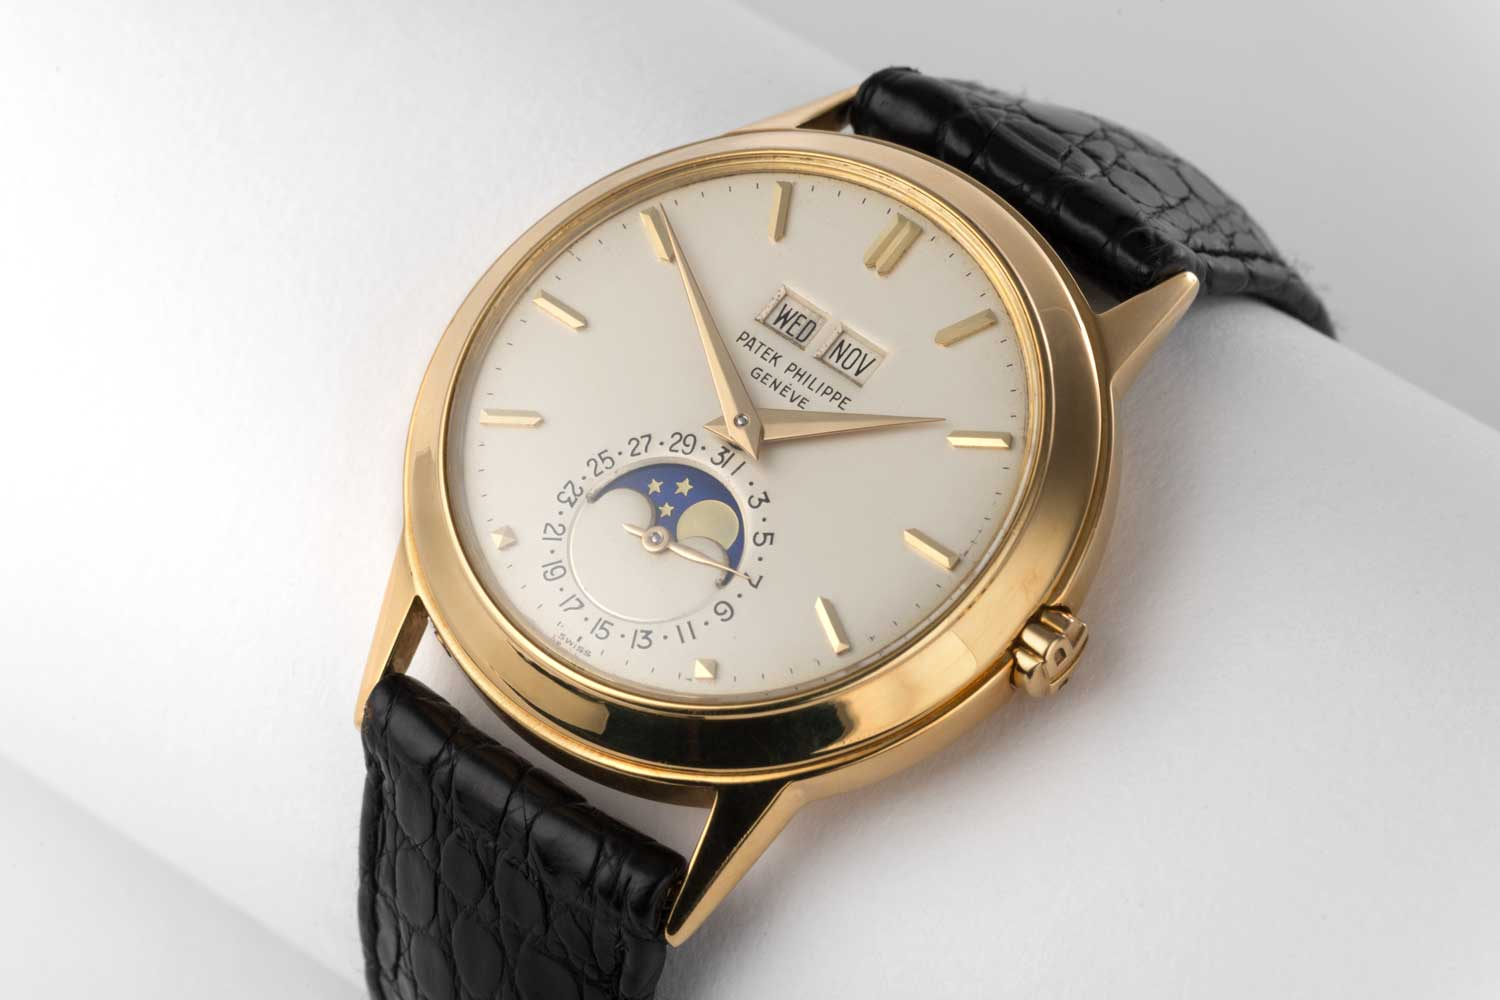 """The ref. 3448 is known for its large, perfectly round and thin """"disco volante"""" (""""flying saucer"""") case, characterised by dynamically attenuated lines designed by Geneva-based case-maker Antoine Gerlach(Image: The Watch Club)"""